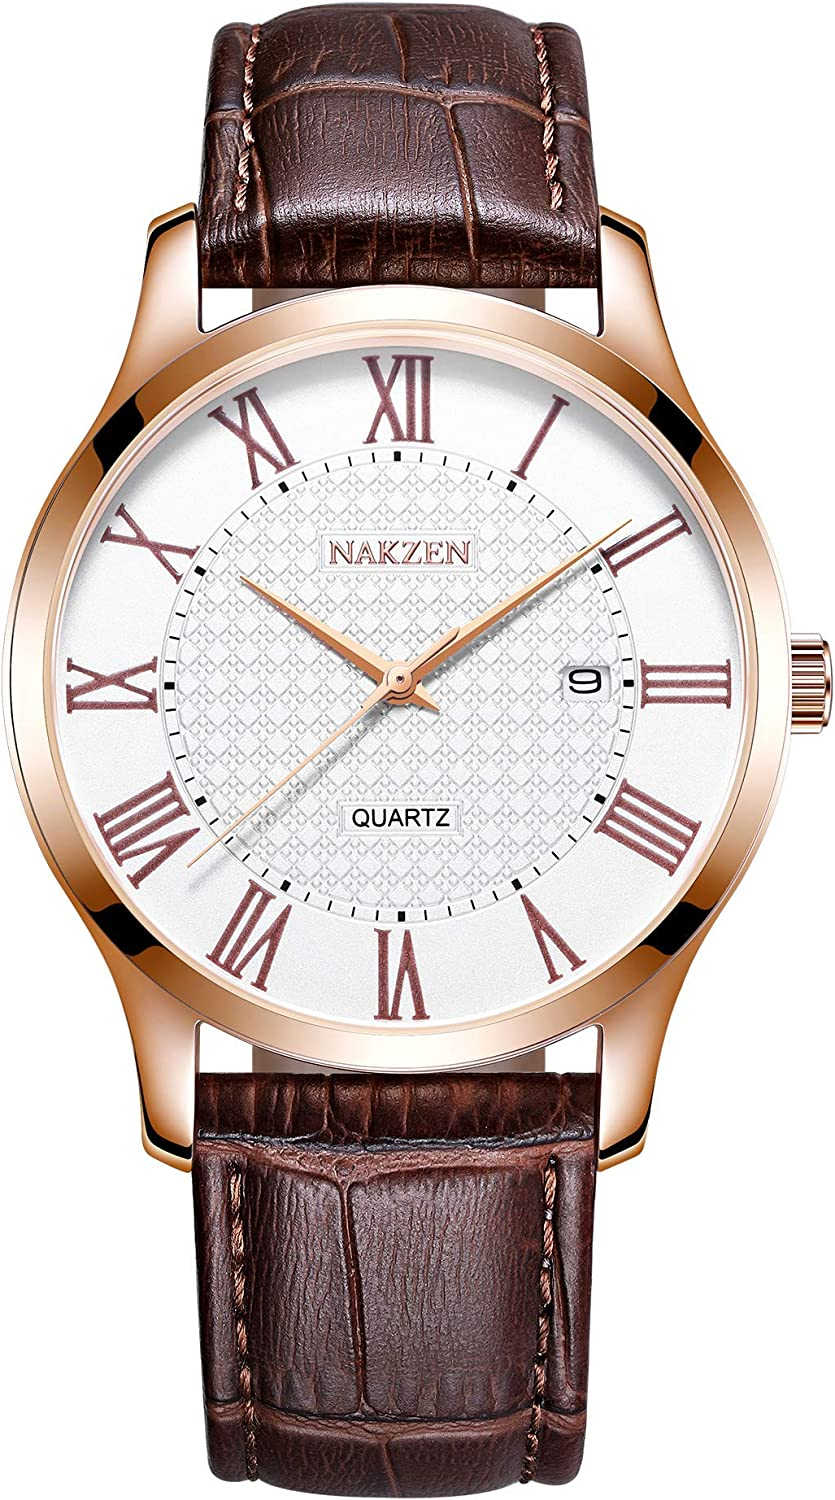 NAKZEN Mens Business Quartz Watch Day and Date Classic Simple Big Dial Tower Waterproof Wrist Watch with Leather Strap and Roman Numerals